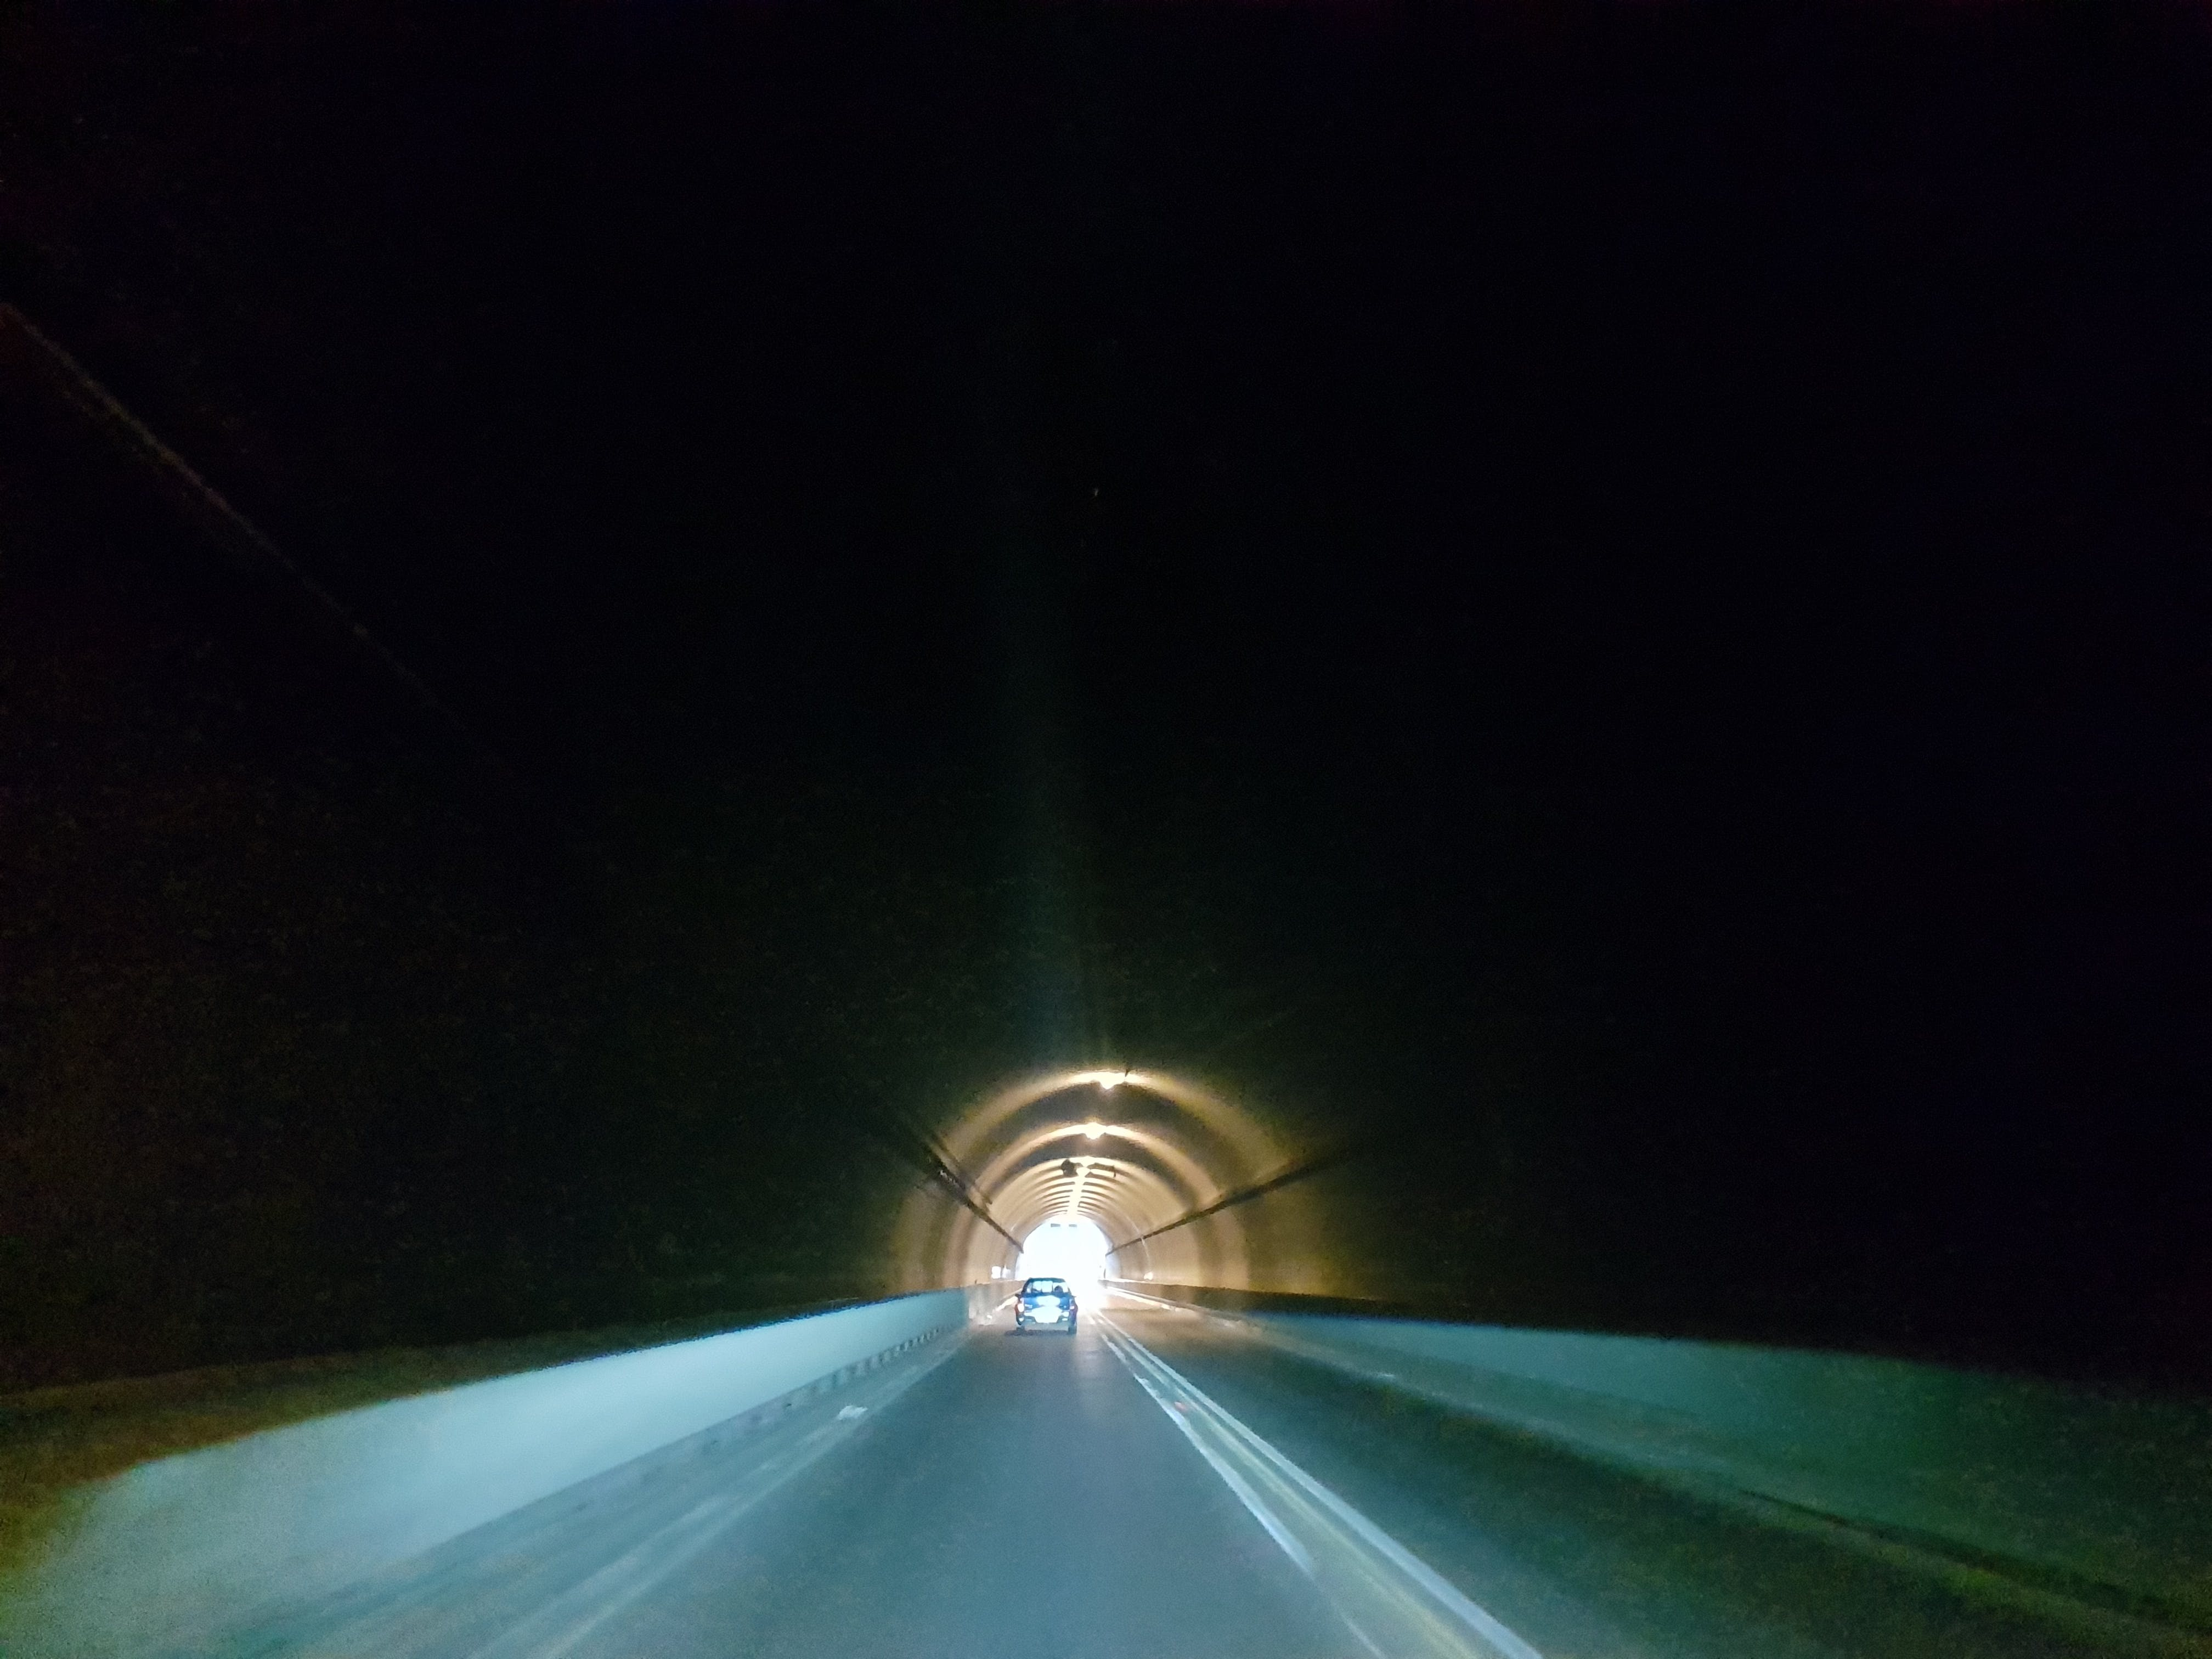 Free stock photo of light, road, tunnel, contrast